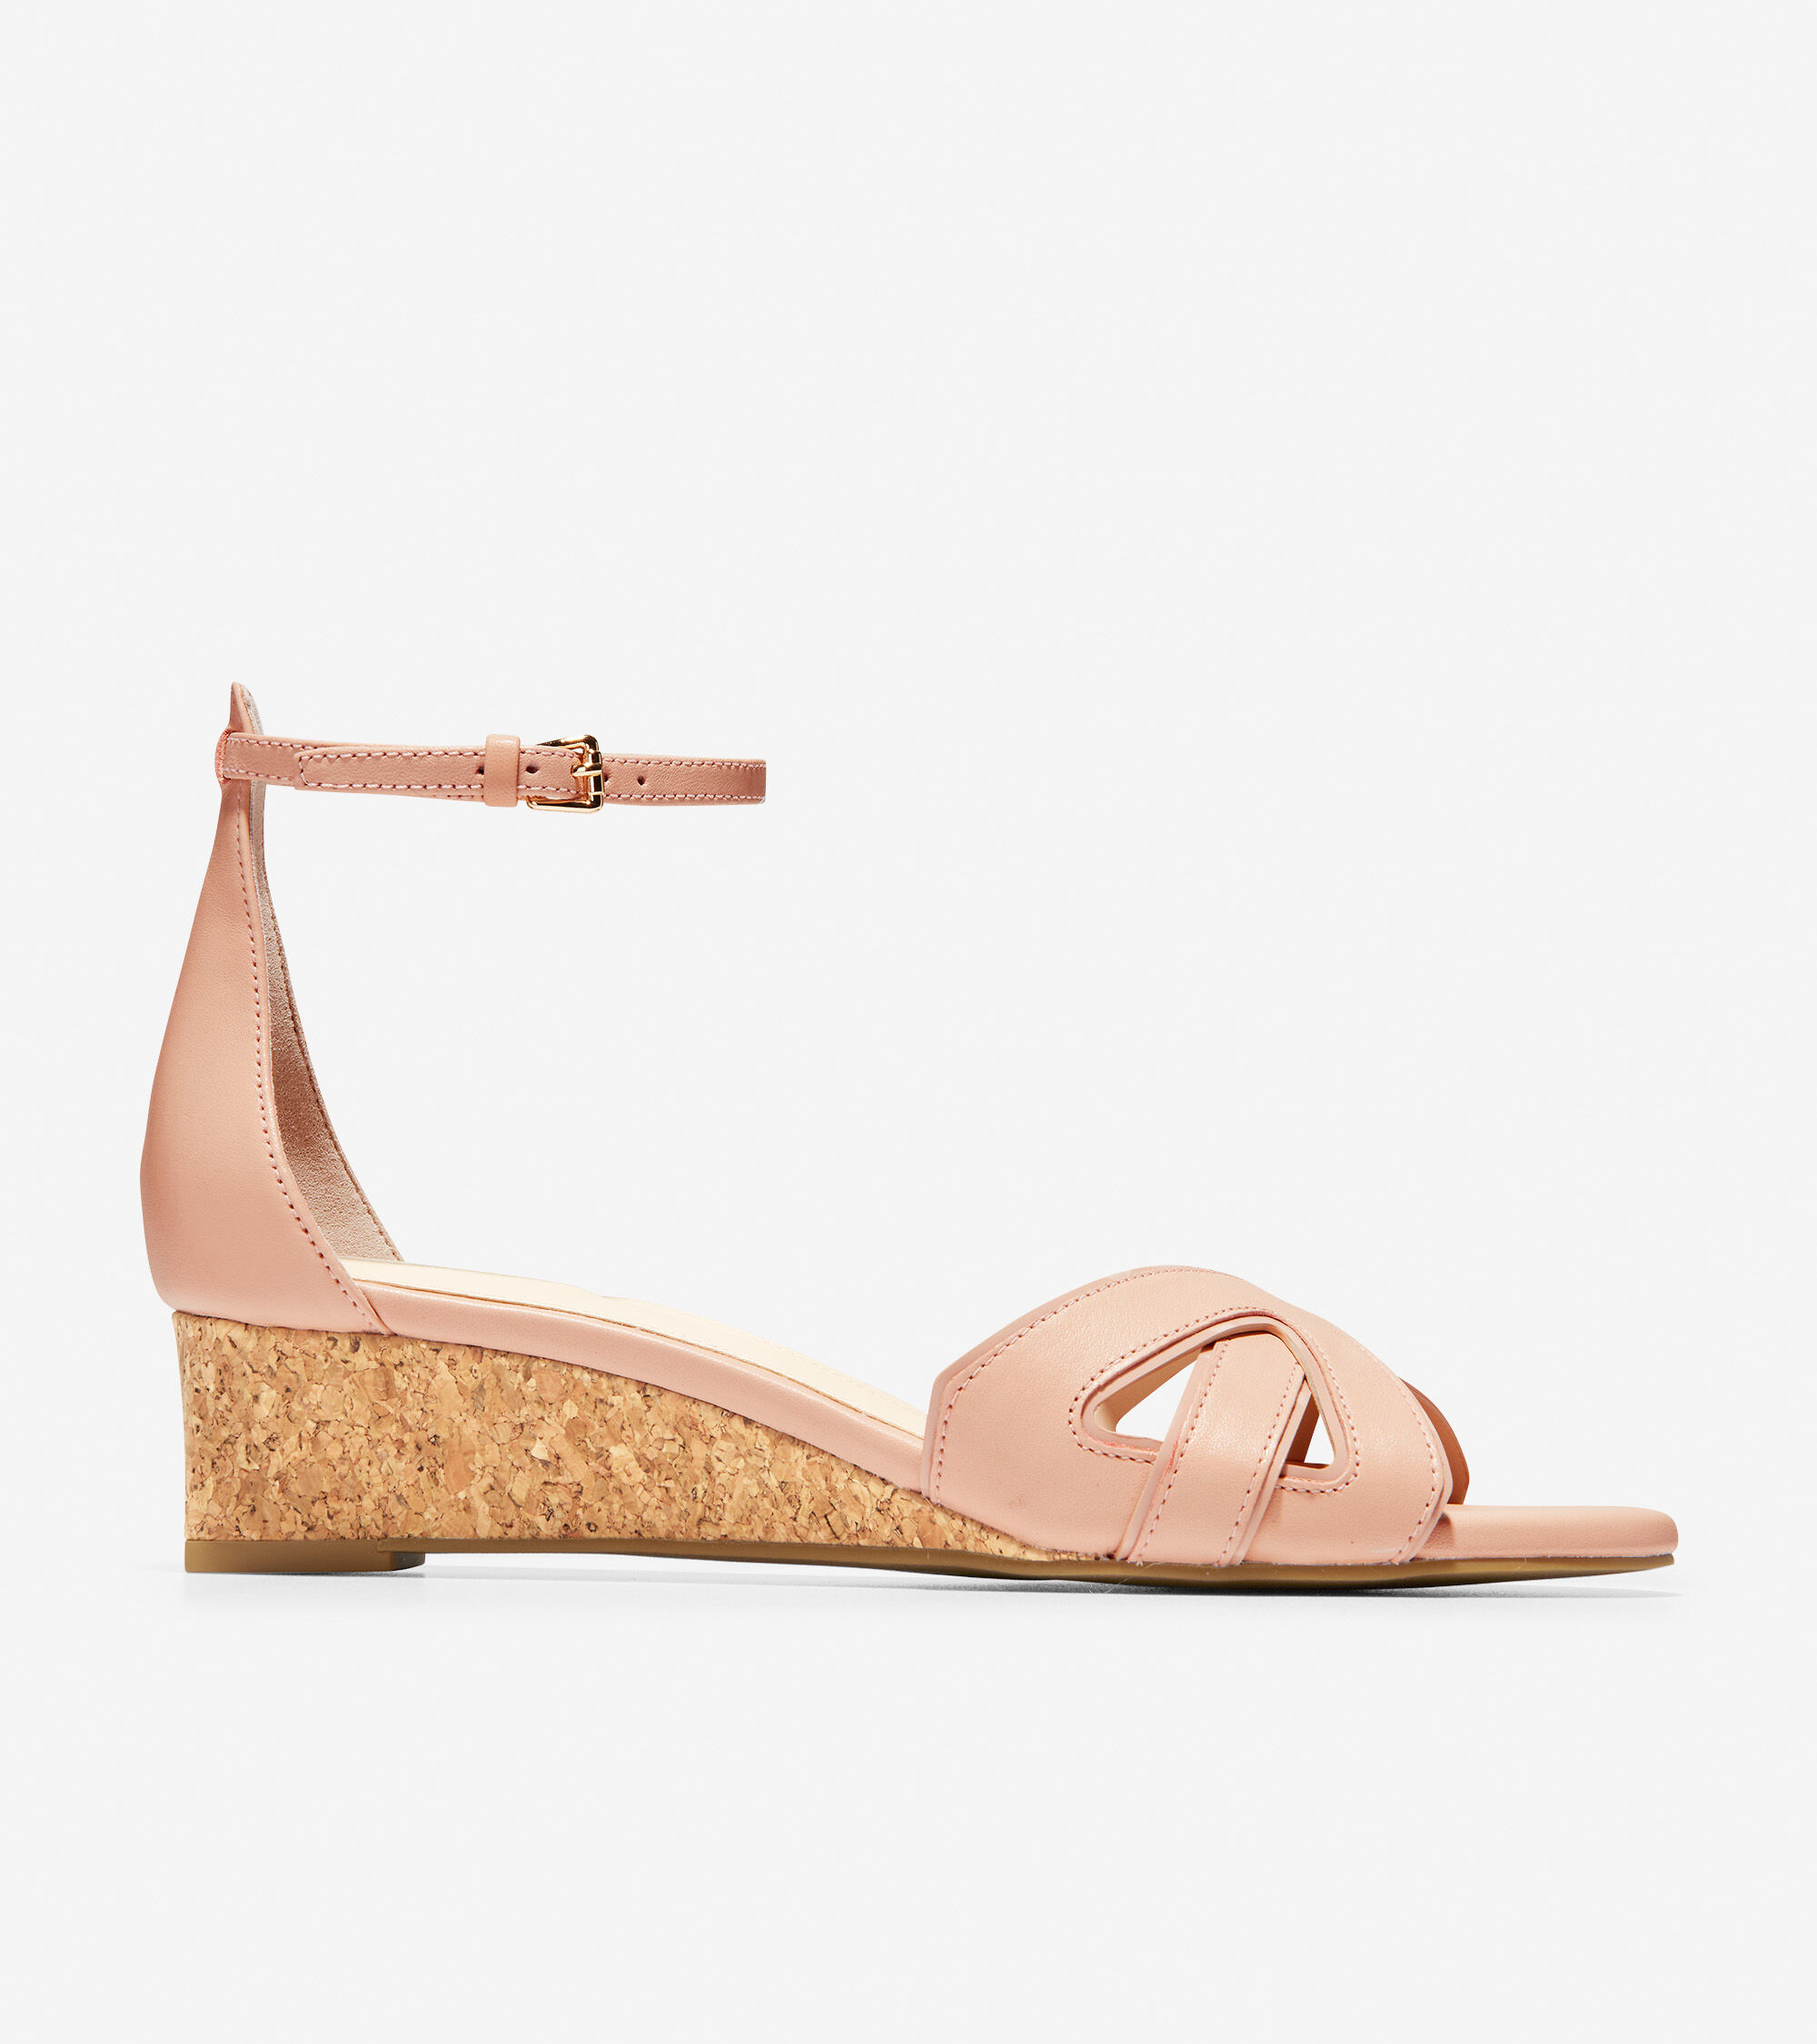 56caf8e7b Cole Haan Hana Grand Wedge in Mahogany Rose Leather-Patent Cork    ColeHaan.com